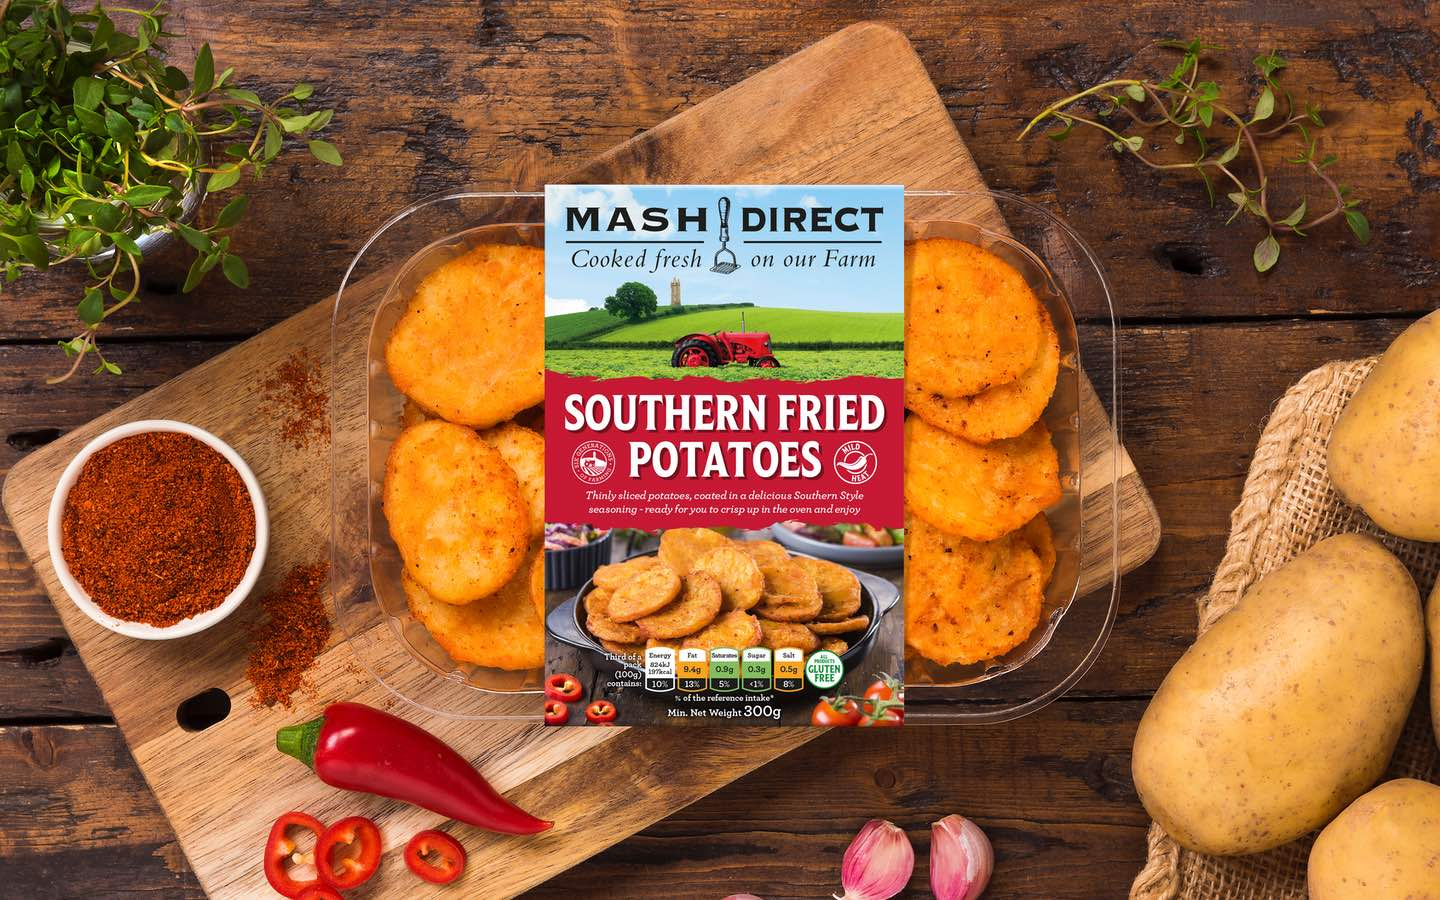 NEW and Improved Southern Fried Potatoes